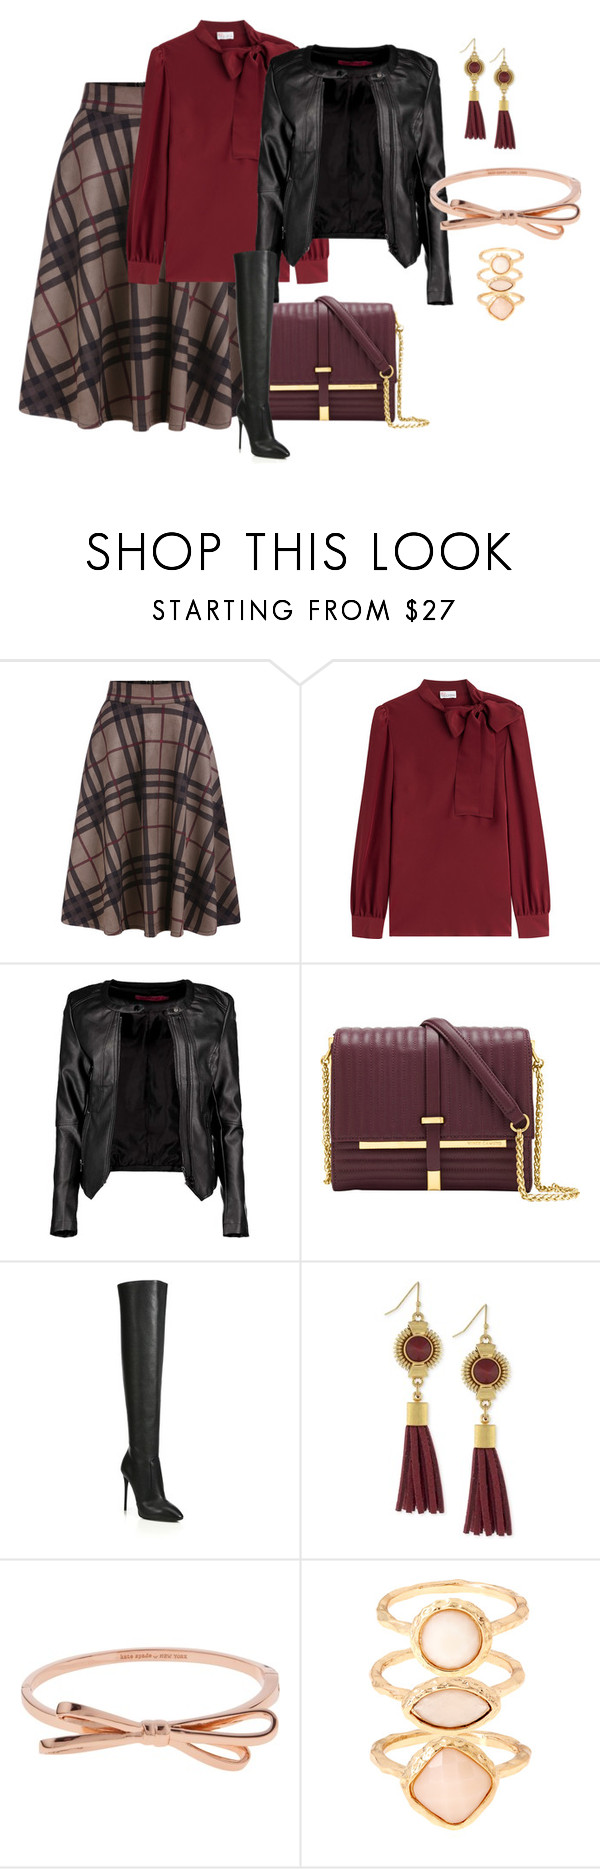 """""""checkered zip"""" by shoesclothesbagsaddict ❤ liked on Polyvore featuring RED Valentino, Boohoo, Vince Camuto, Giuseppe Zanotti, Kate Spade and Monsoon"""